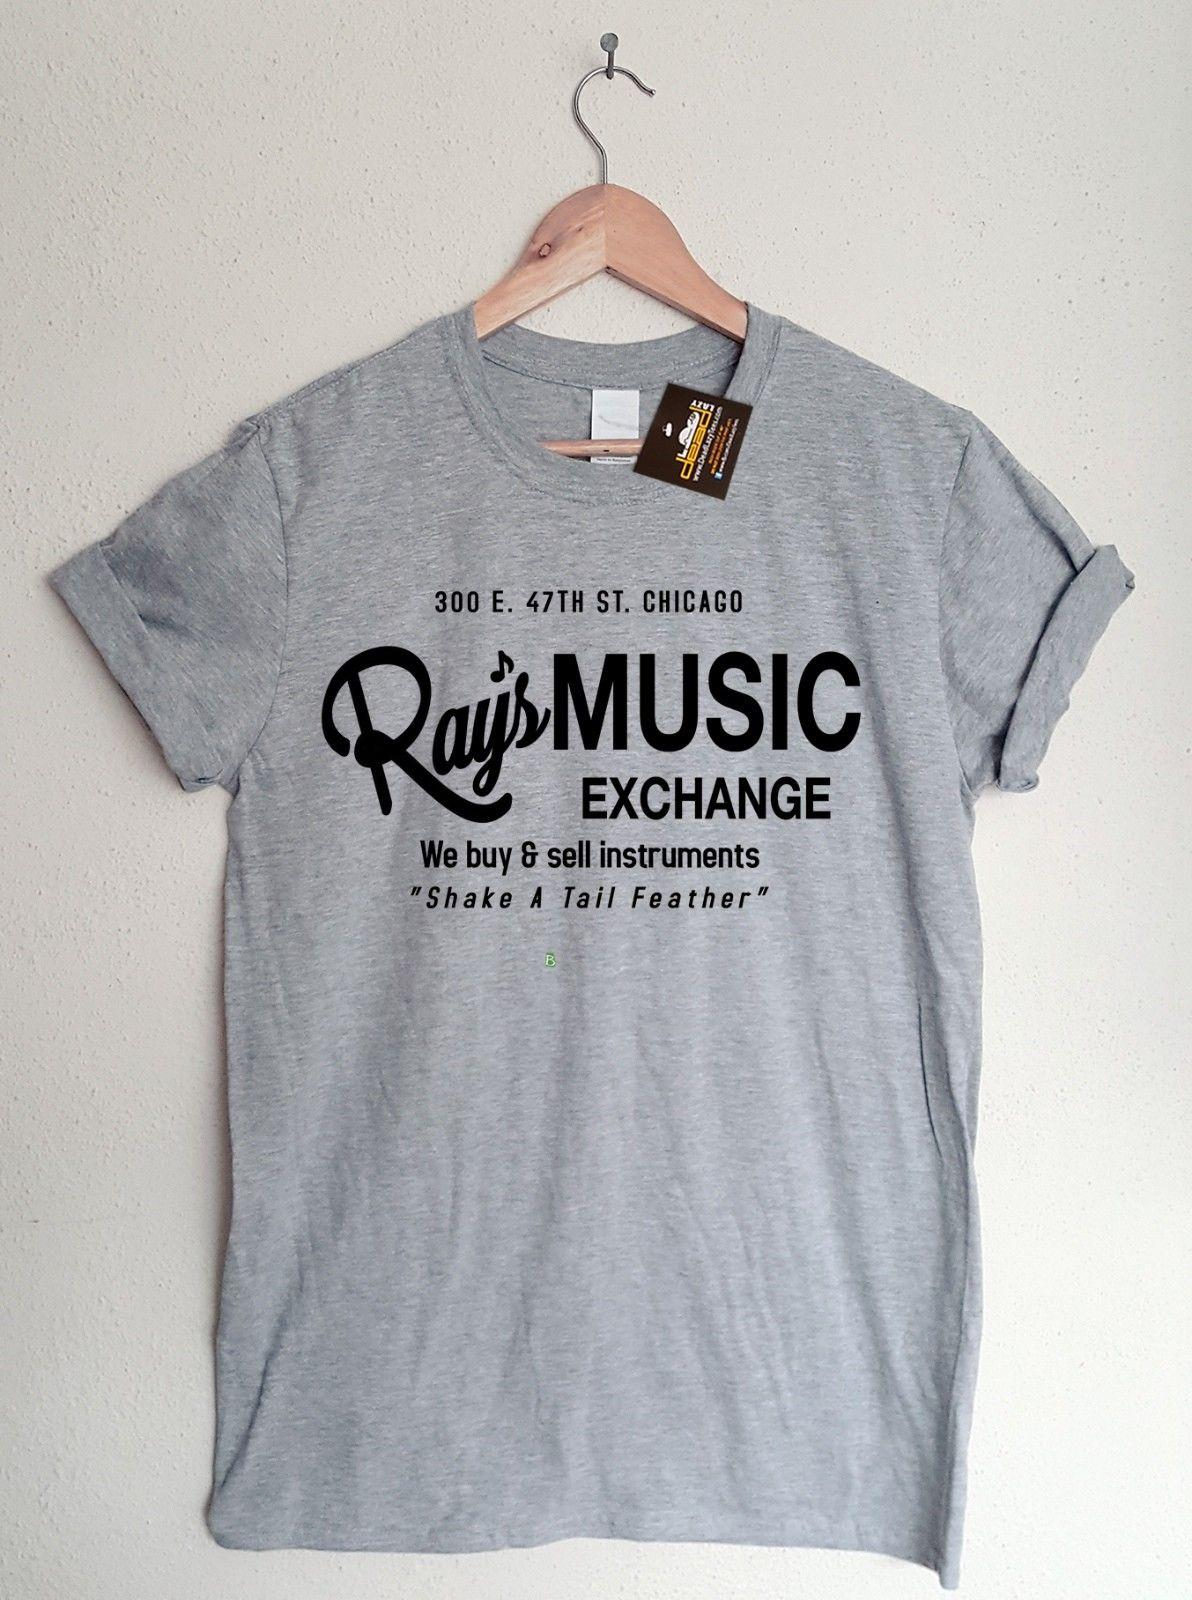 3537843f Blues Brothers Inspired Ray's Music Exchange T-shirt - 80's Film T-shirt  Tee Funny free shipping Casual tee